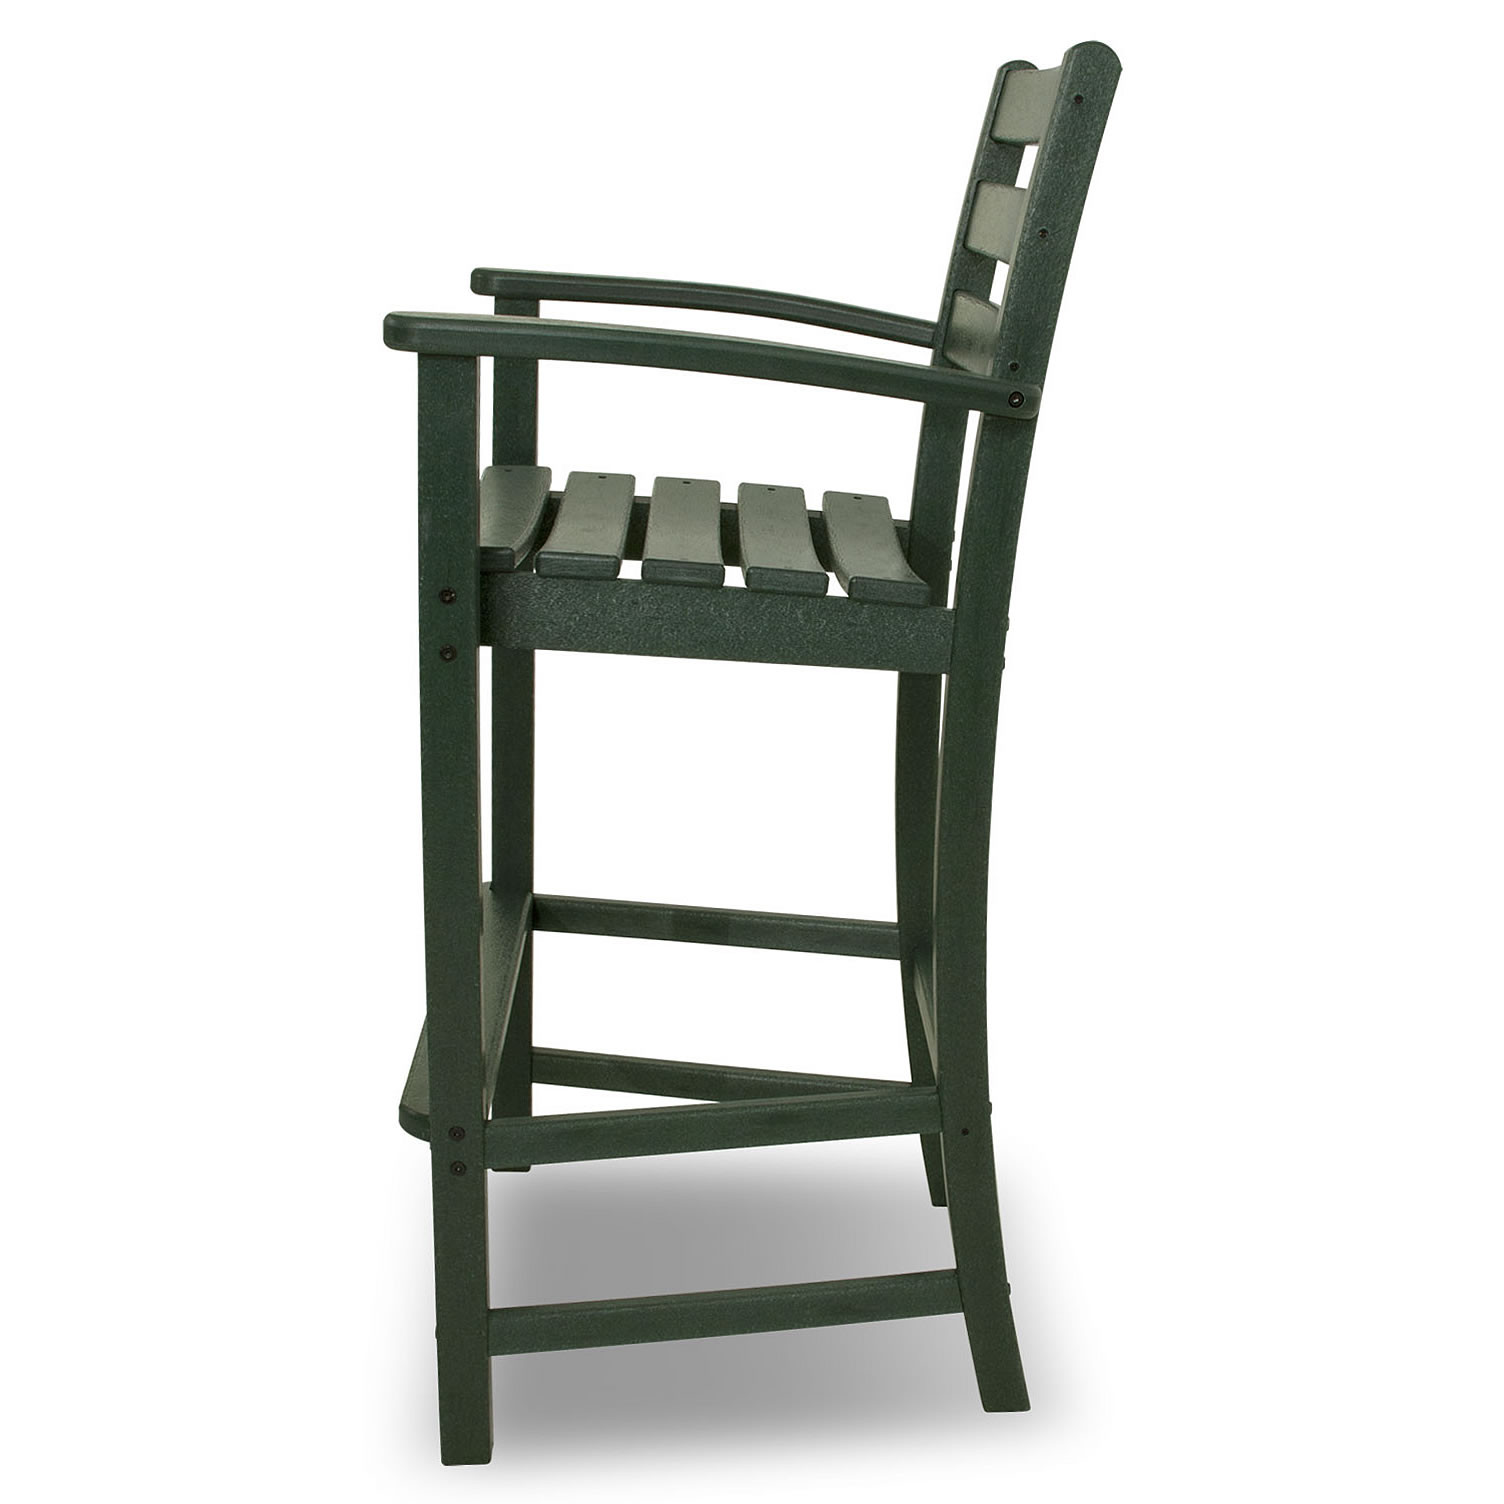 Counter Height Arm Chairs : Trex? Outdoor Furniture Monterey Bay Bar Height Arm Chair - Monterey ...